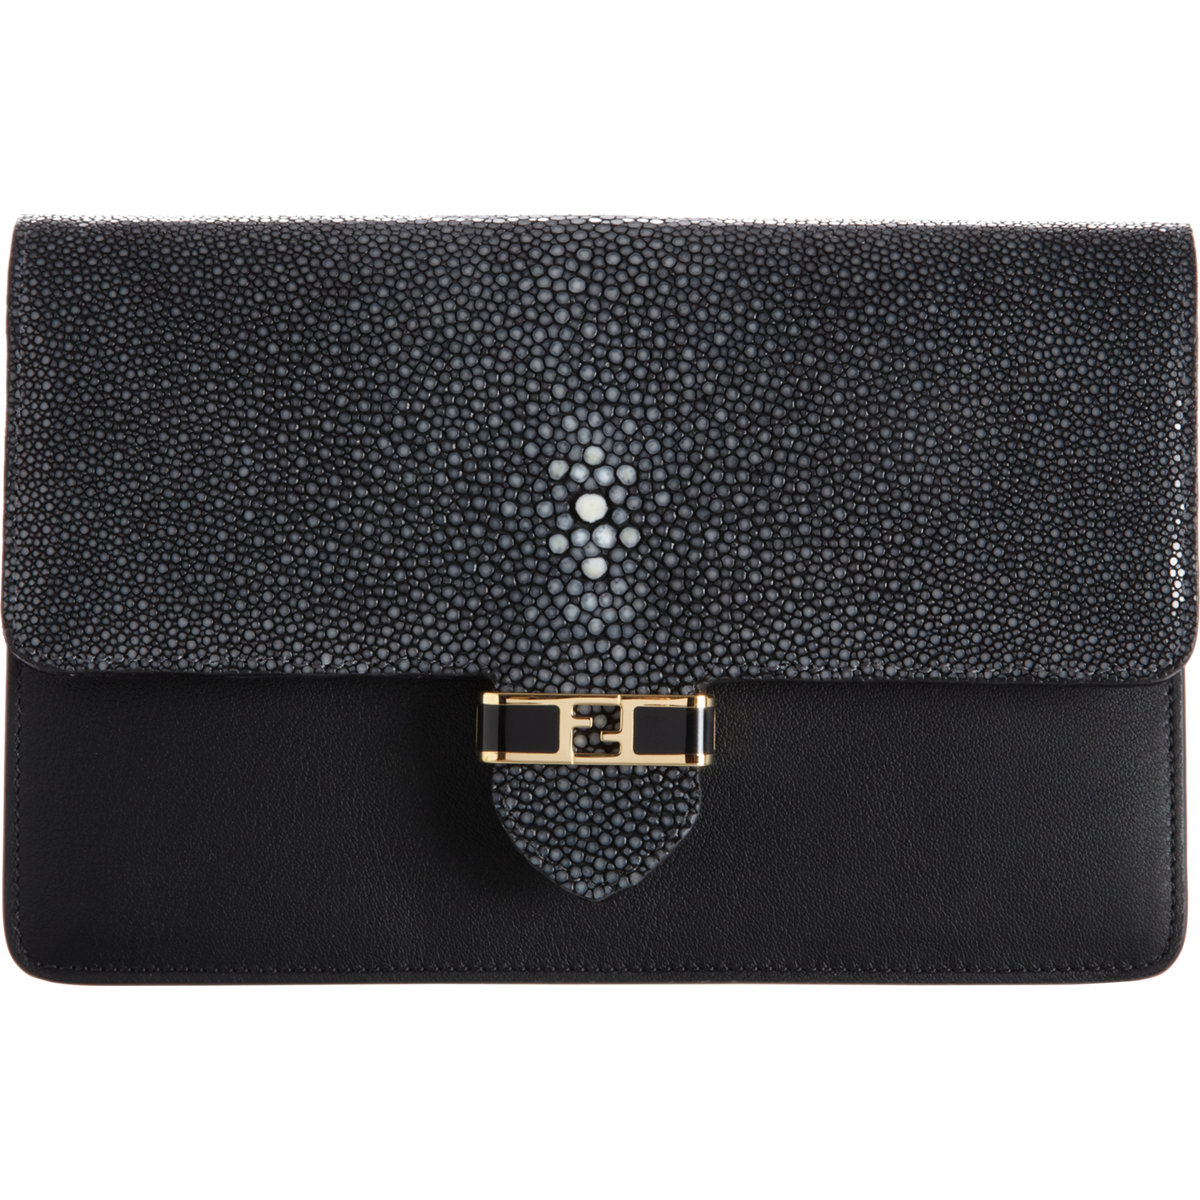 ... Fendi Shagreen Mini Clutch with Chain Strap in Black - Lyst new arrival  3d4fc 0b0d9  Fendi Black Leather ... 93c8e9737e6b7